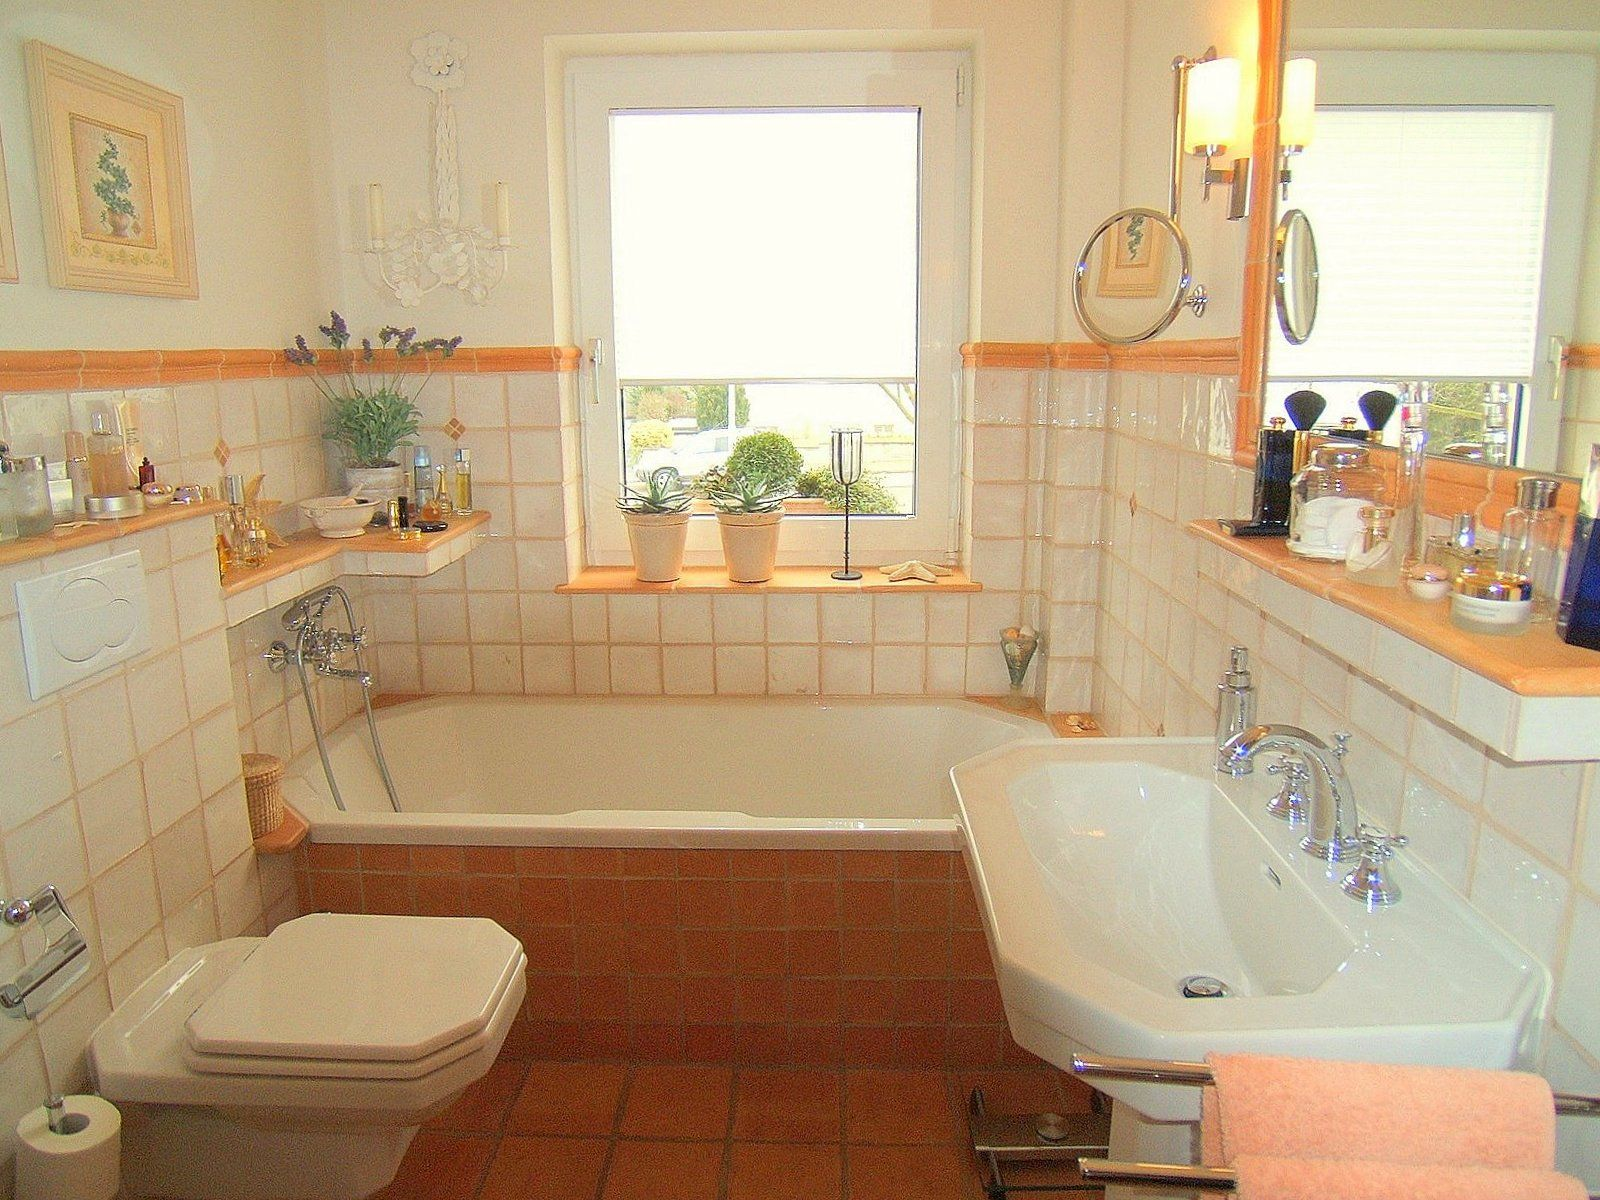 Fliesen Bad Terracotta Badezimmer Fliesen Terracotta Bungalow Haus Bauen Corner Bathtub